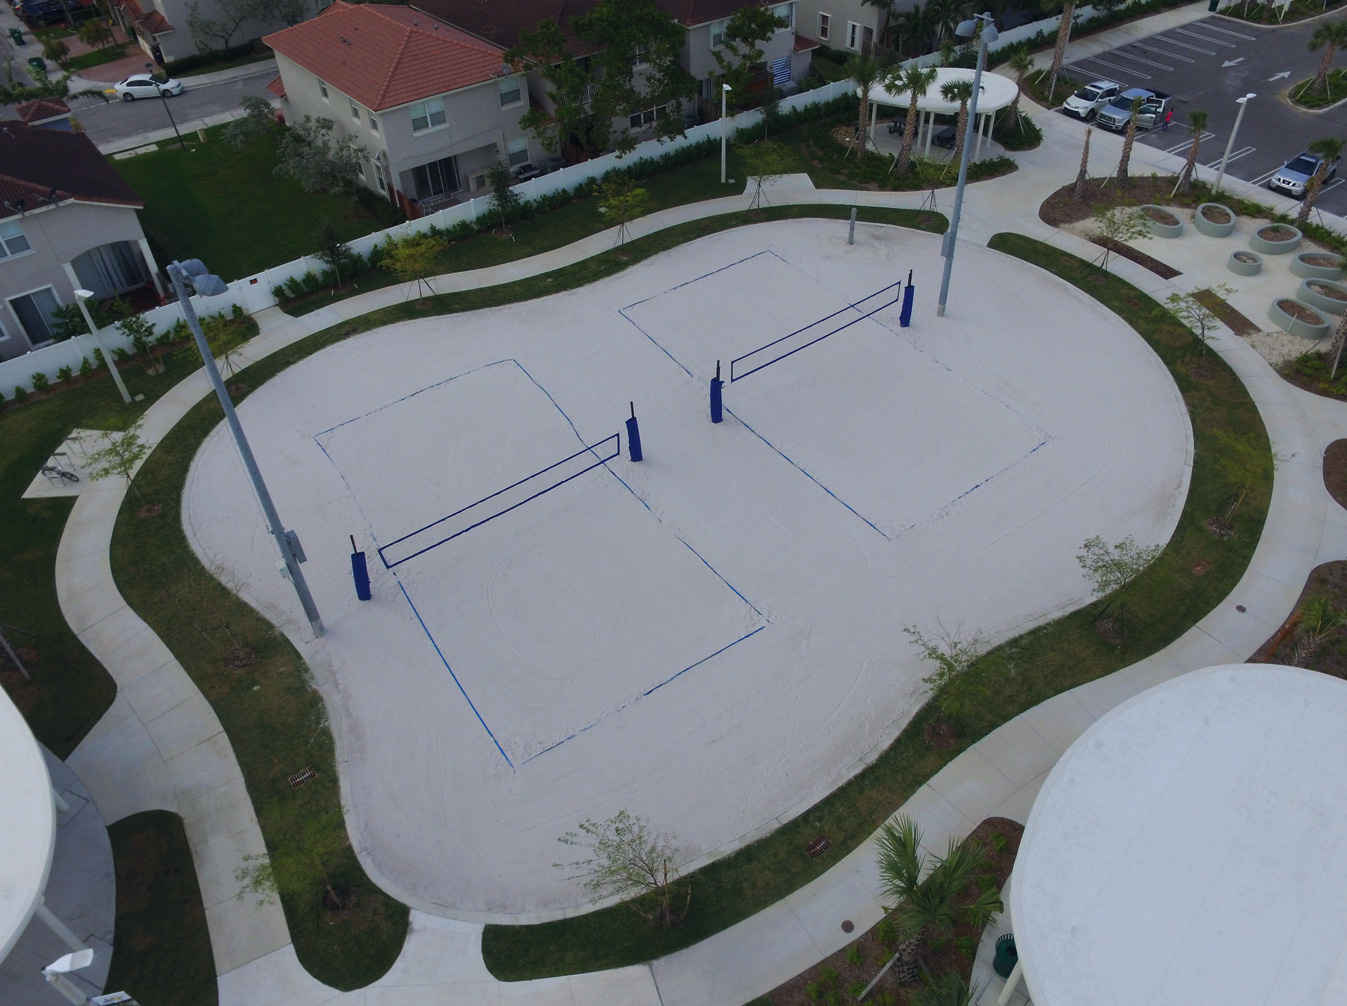 aerial image of sand volleyball court with grass surrounding border